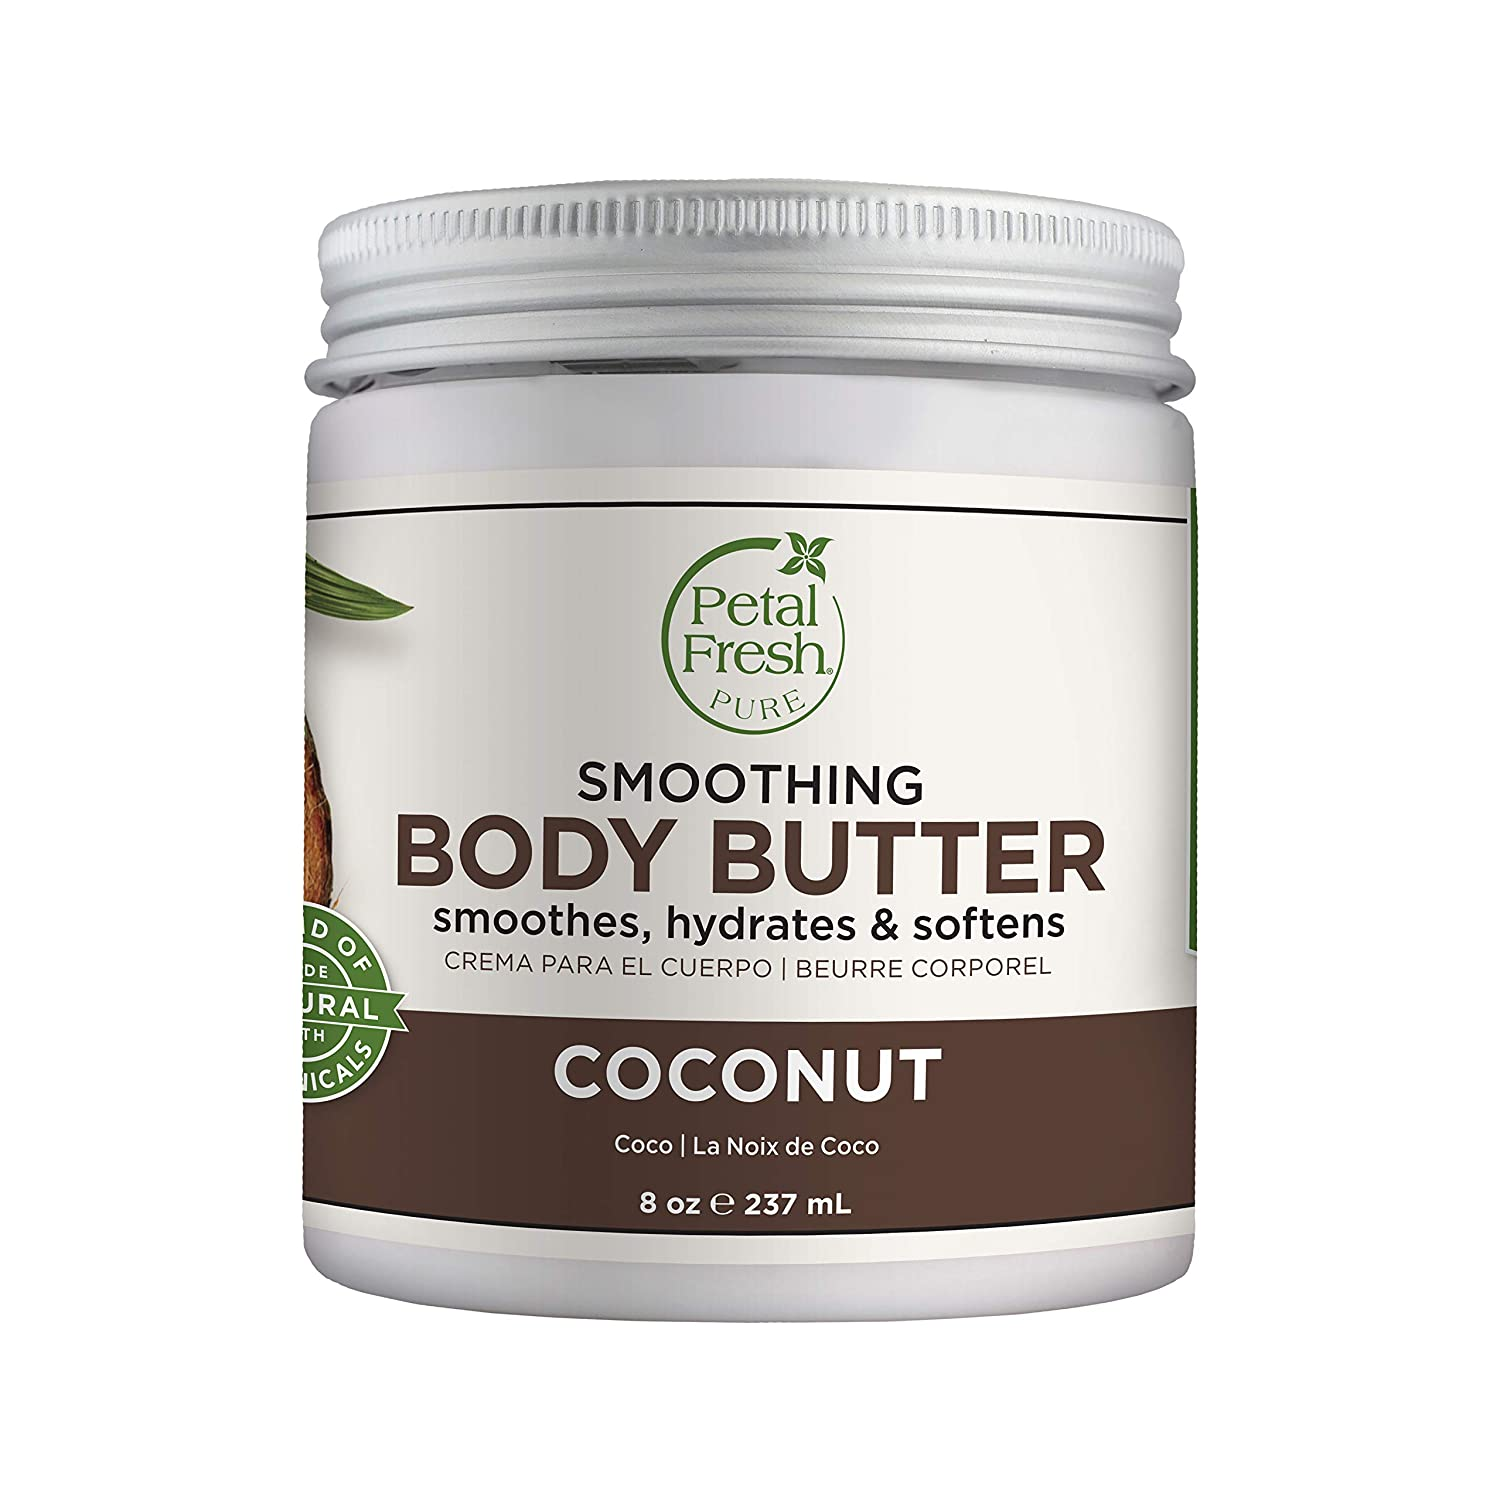 Petal Fresh Pure Smoothing Coconut Body Butter